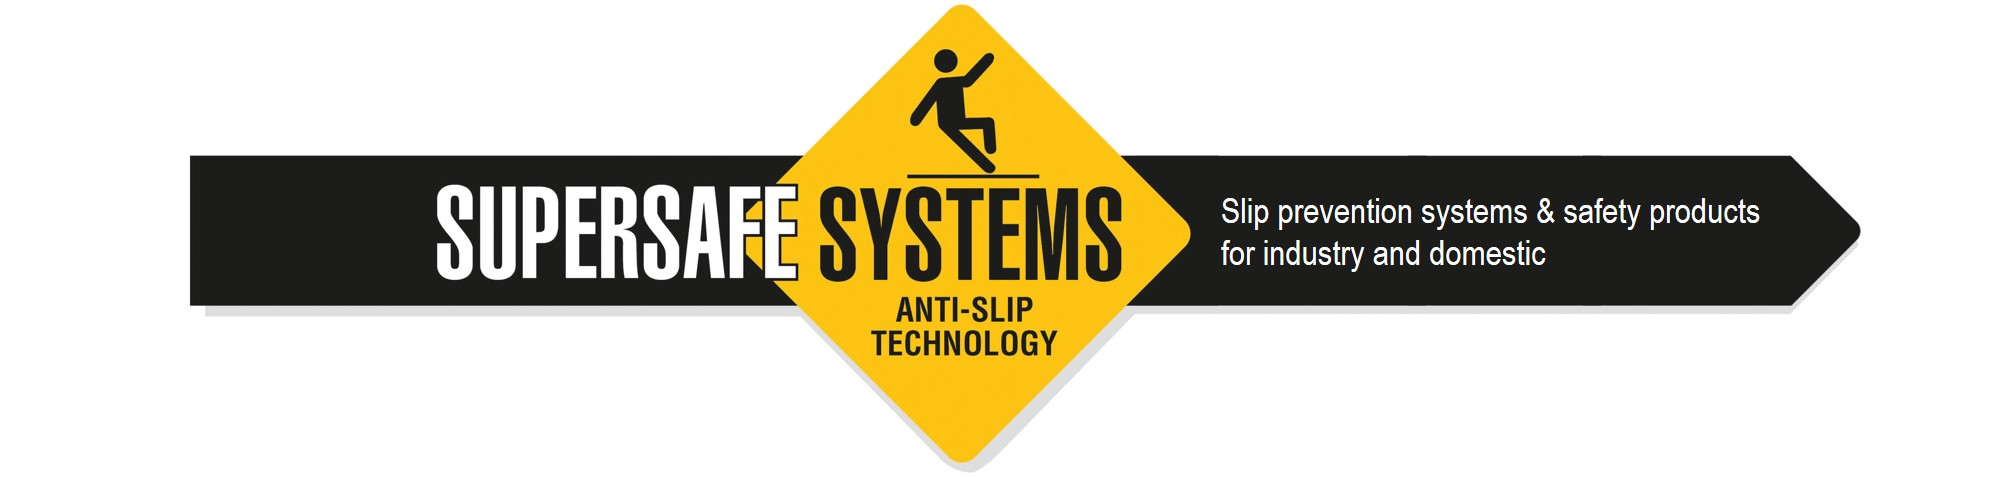 Super Safe Systems